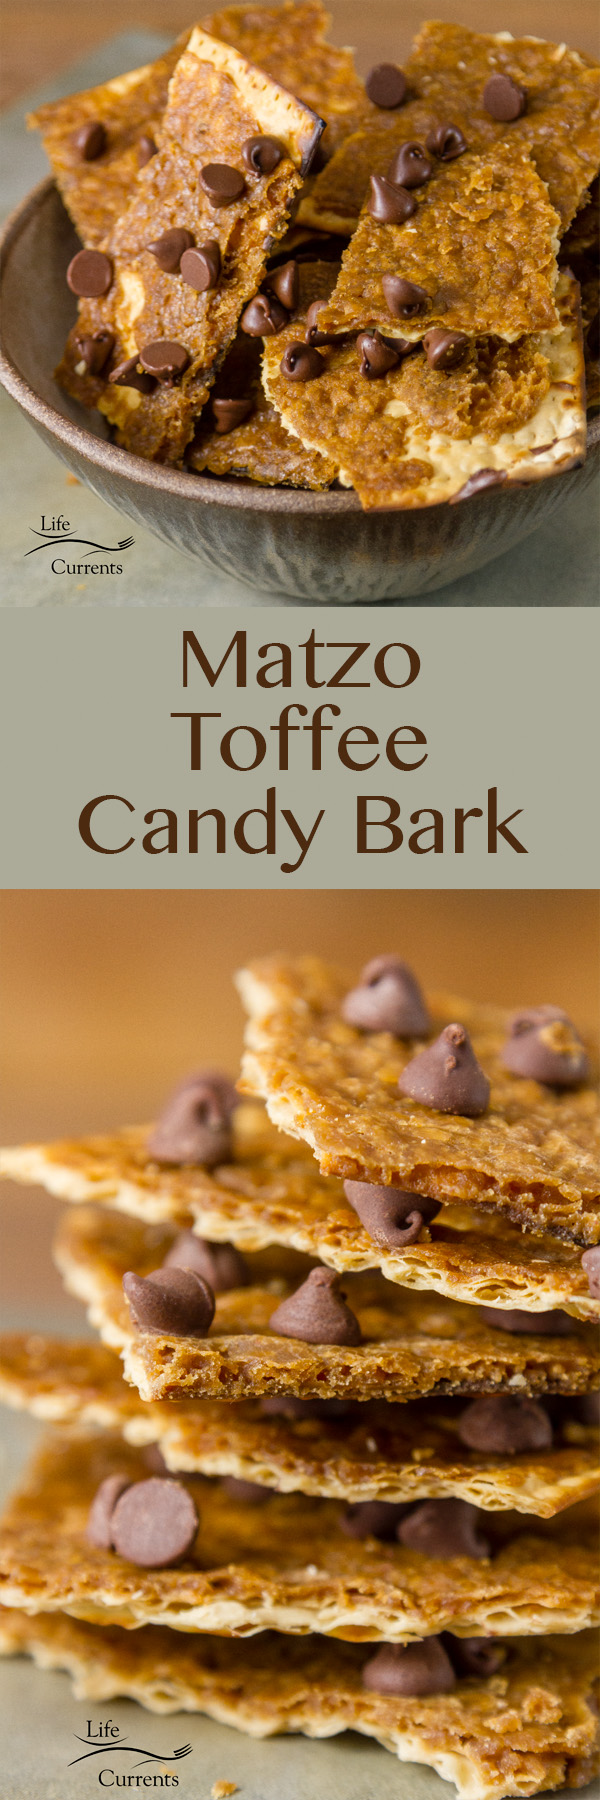 Matzo Toffee Candy Bark - a delicious holiday dessert treat that you can't stop eating